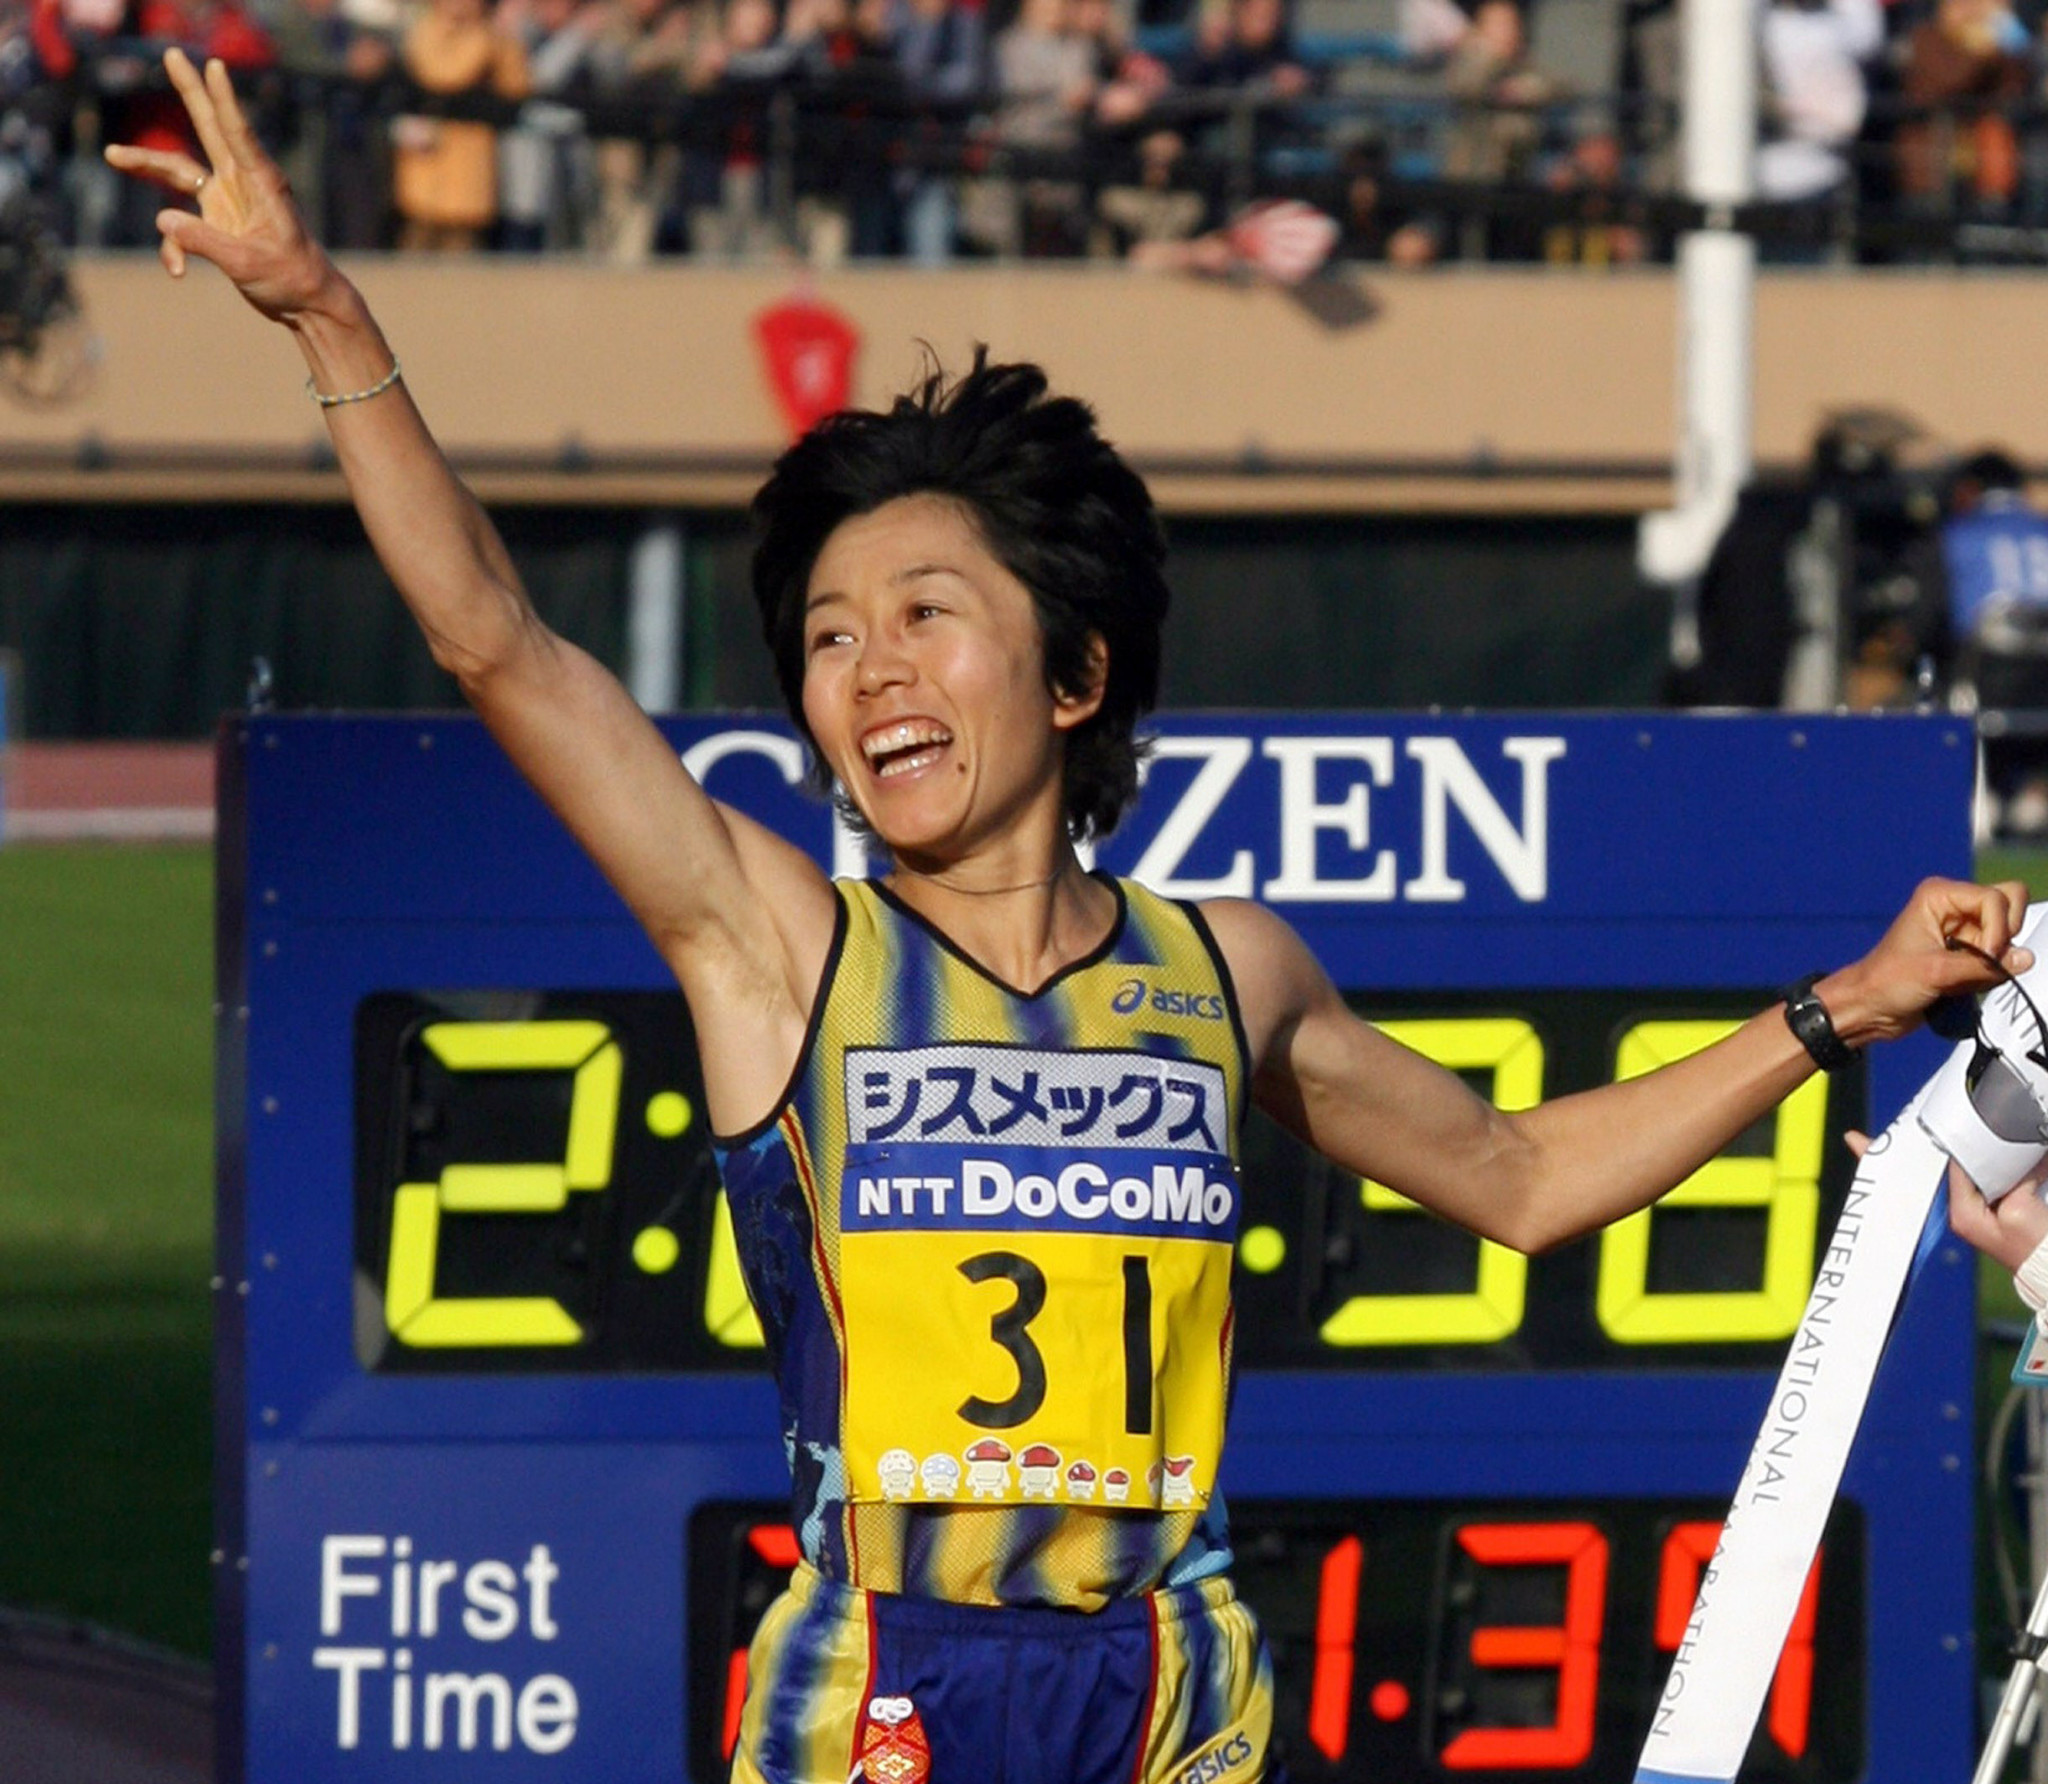 Marathon champion Mizuki Noguchi will be the first Japanese person to carry the Tokyo 2020 Olympic Torch